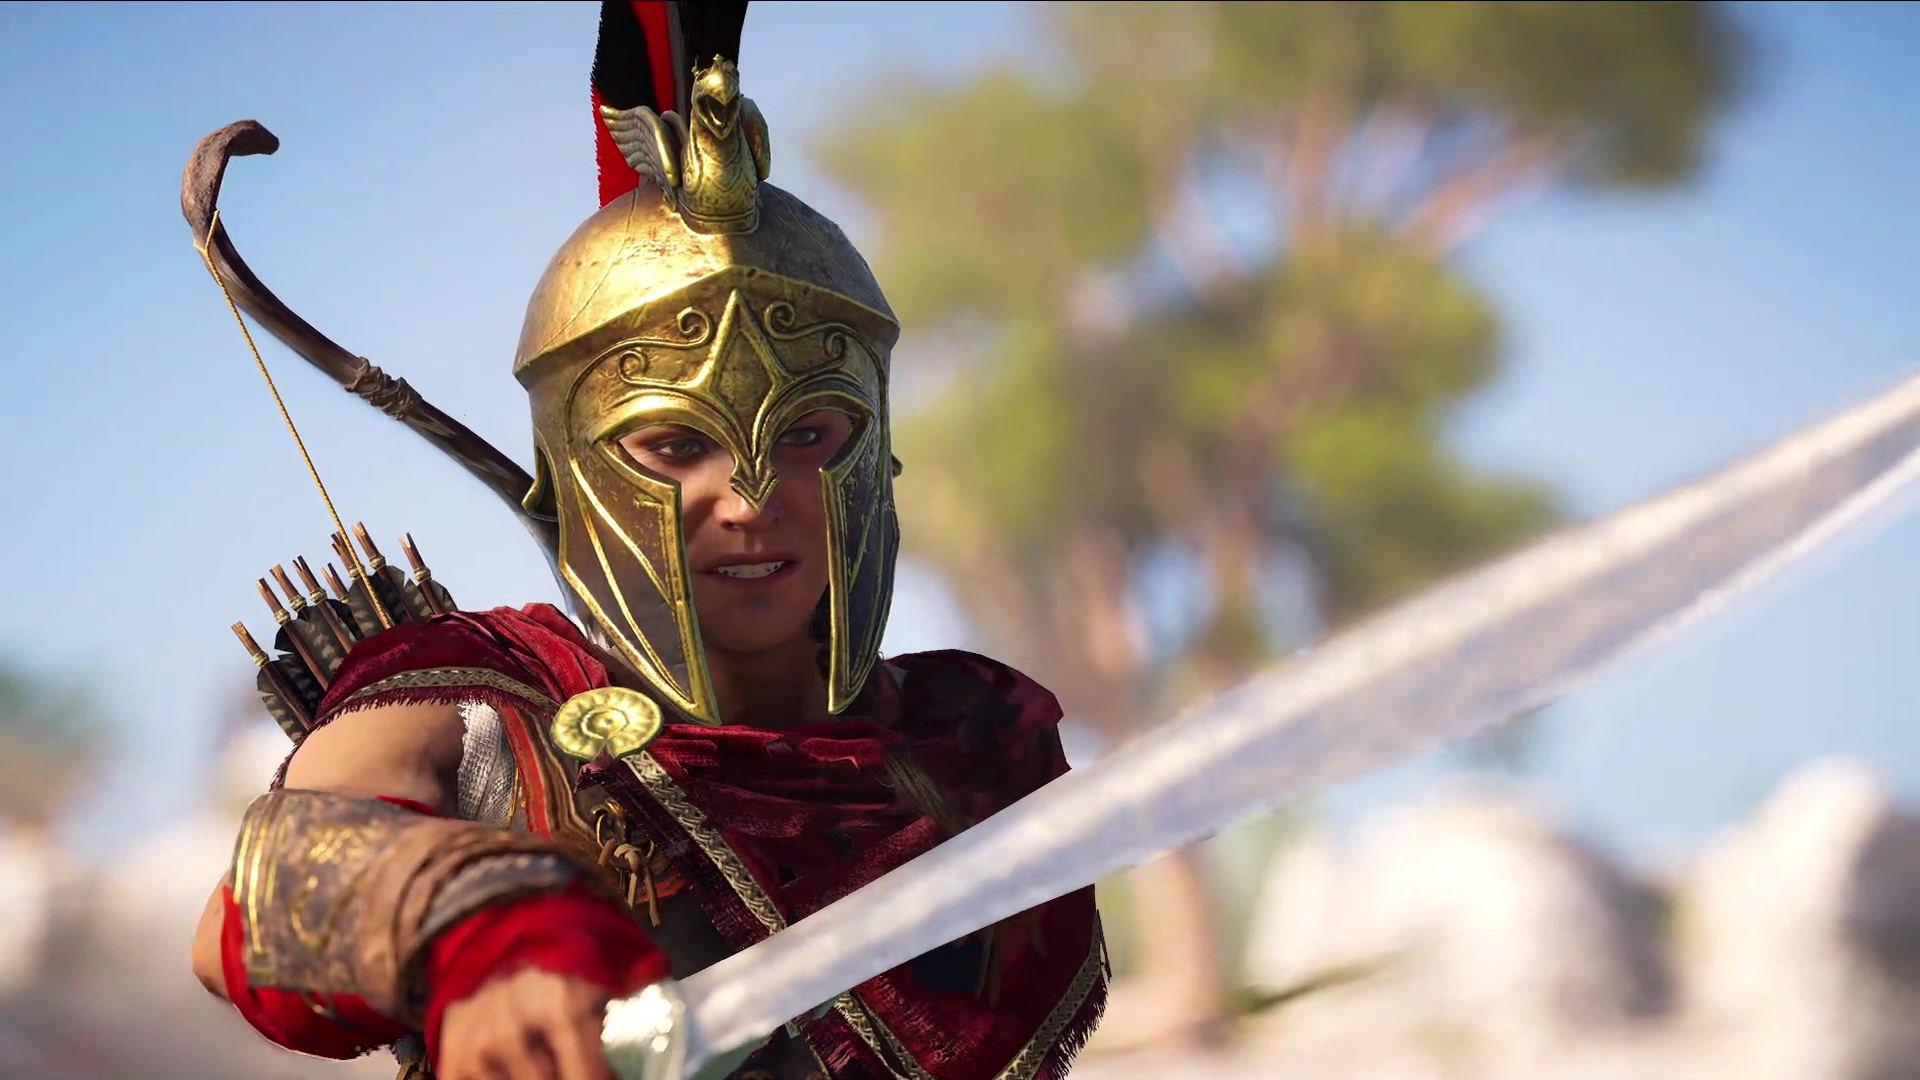 The 5 things to know to enjoy the first 10 hours of Assassin's Creed Odyssey